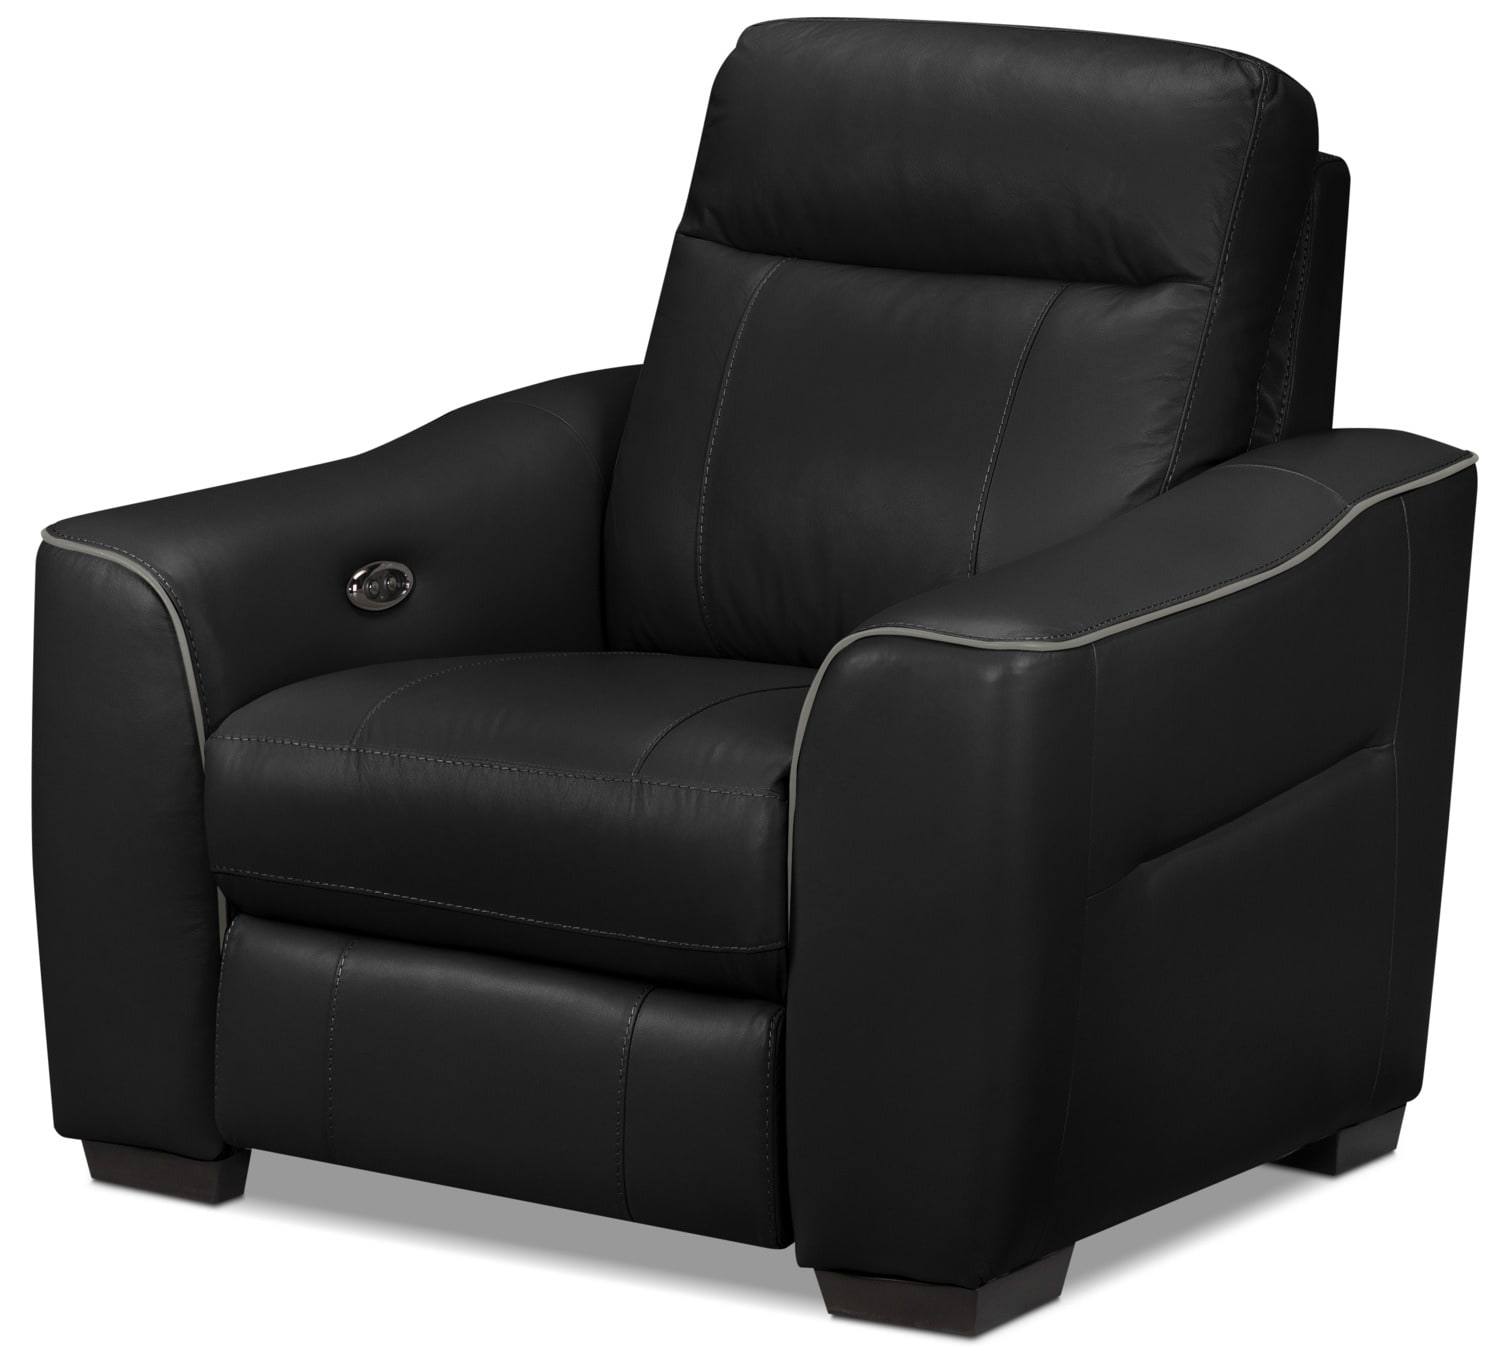 Bolton Power Recliner - Black